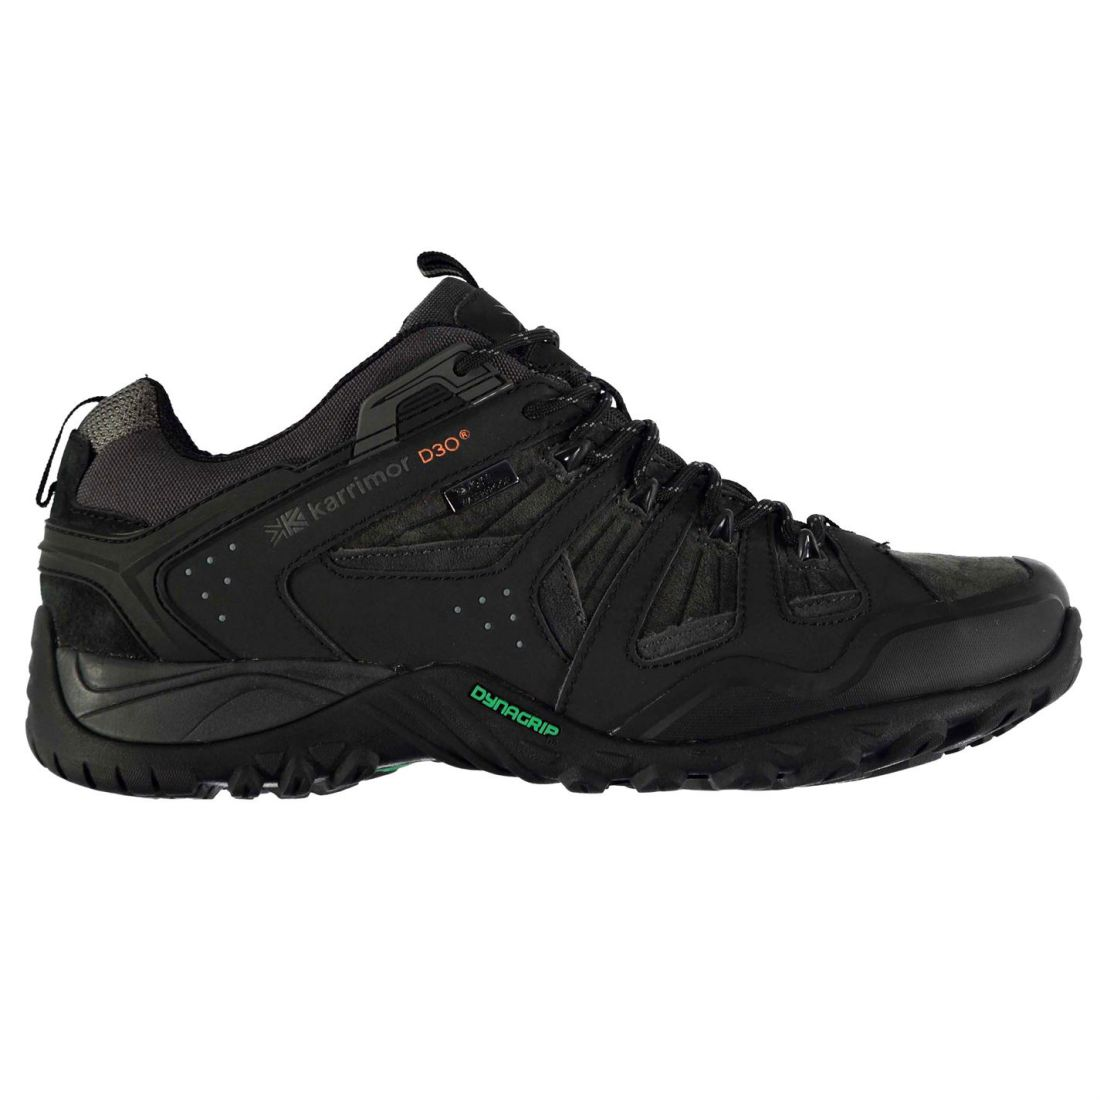 b3ef72a7730 Details about Karrimor Mens Arete Walking Shoes Dynagrip Sole Hiking  Outdoor Lace Up Footwear